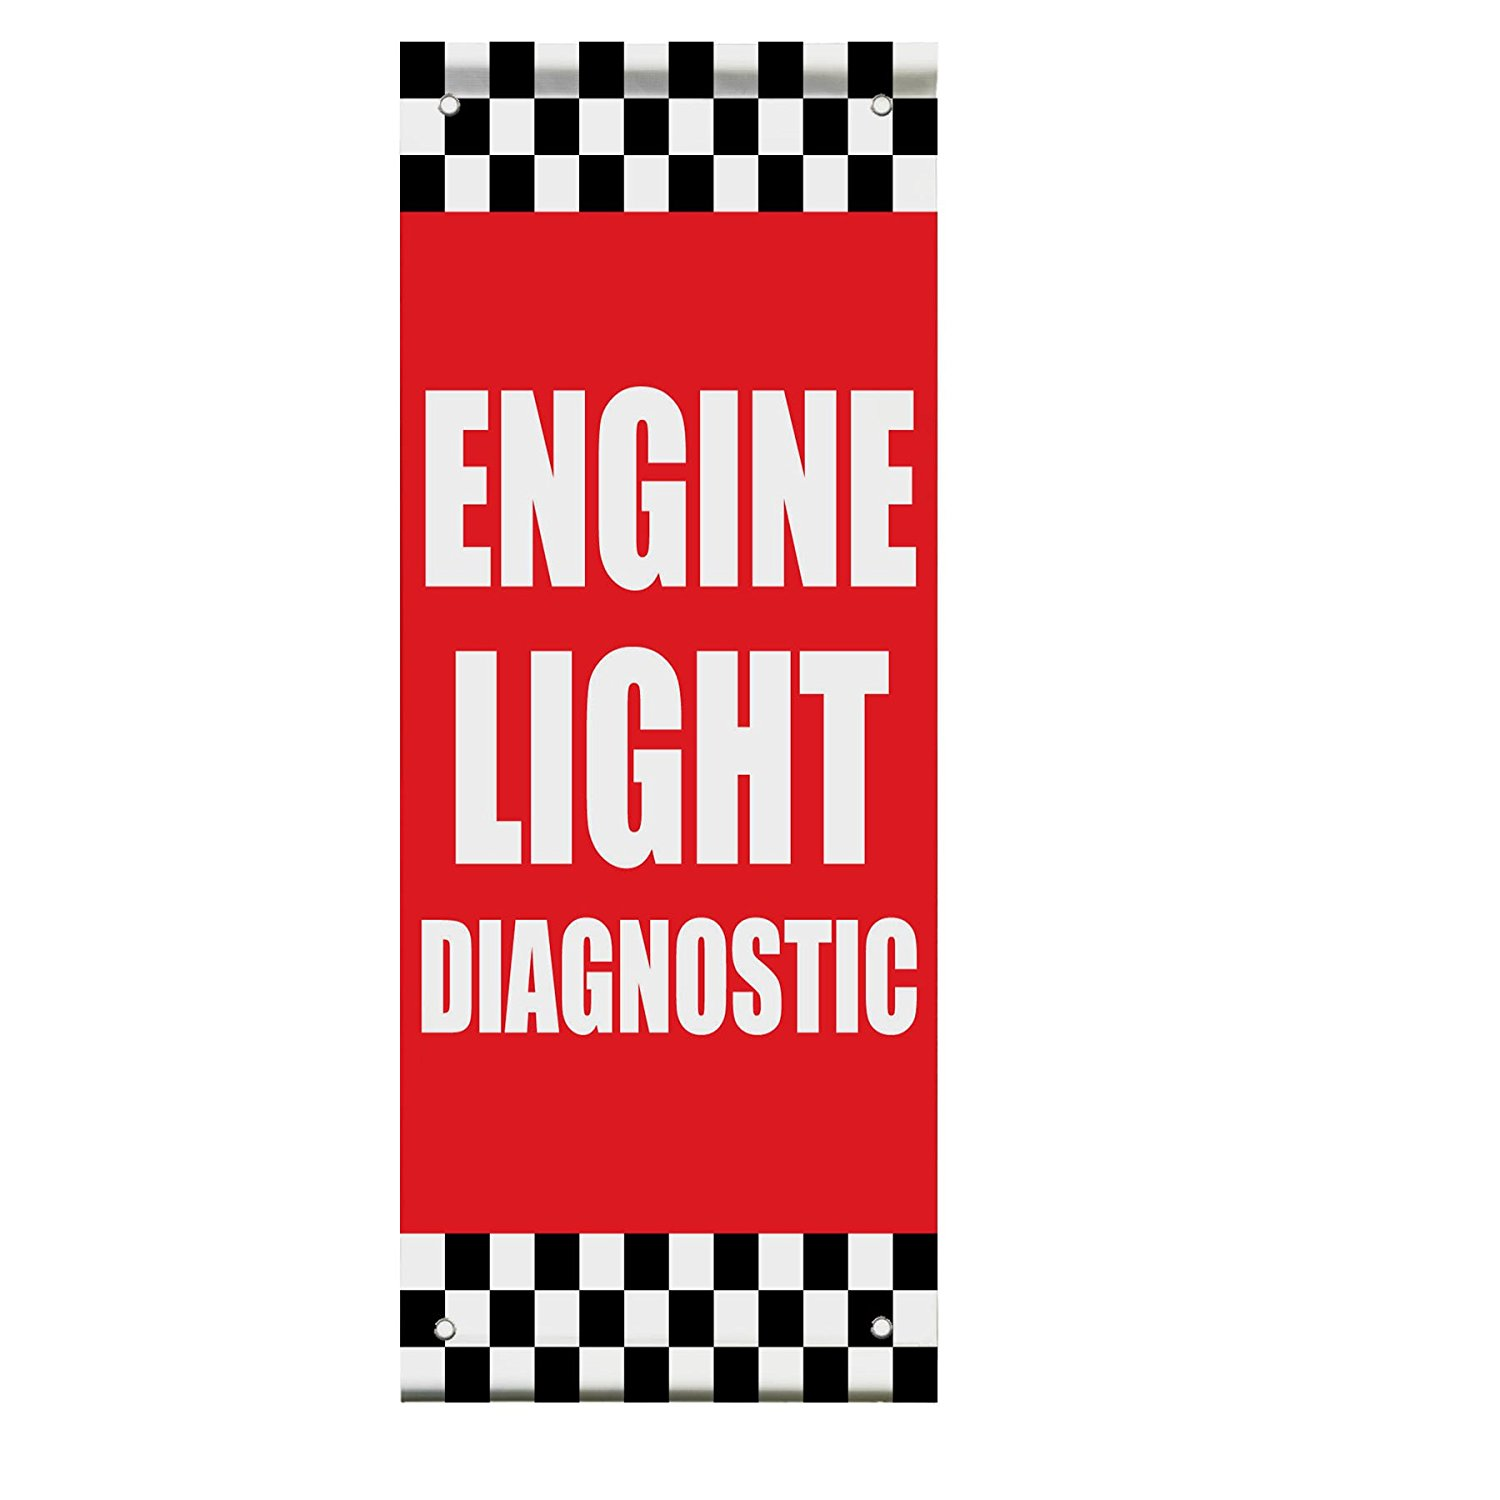 Engine Light Diagnostic Auto Body Shop Car Double Sided Pole Banner Sign 24 in x 36 in w/ Wall Bracket